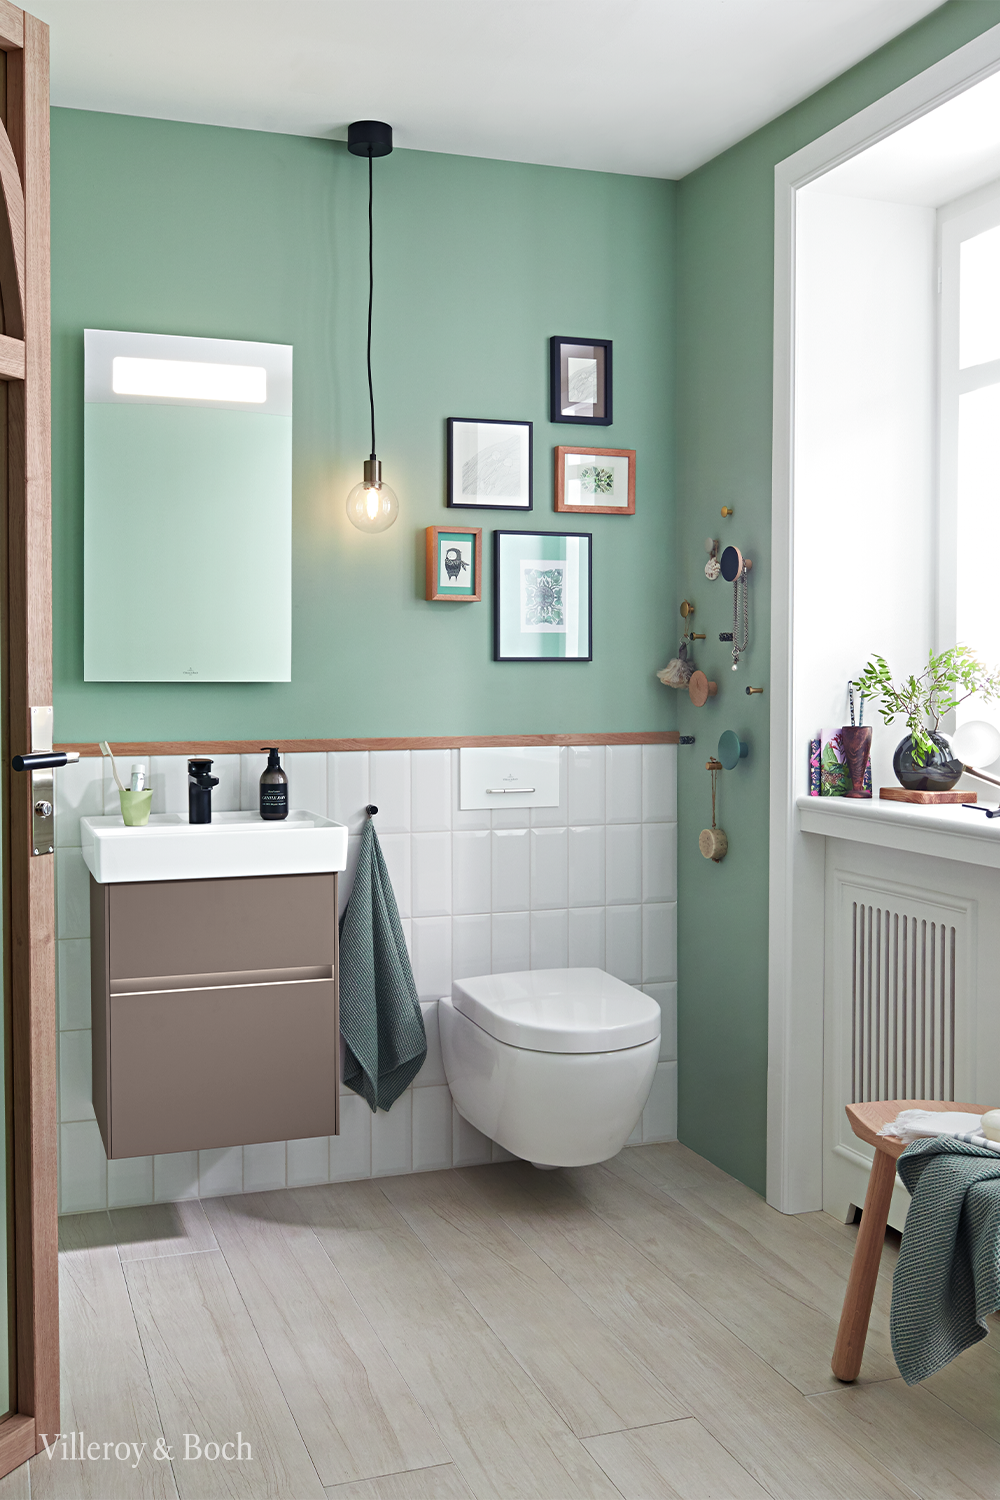 Light Up Your Guest Bathroom With High Quality Mirror Lighting Gaste Wc Wohnung Badezimmer Kleine Badezimmer Inspiration